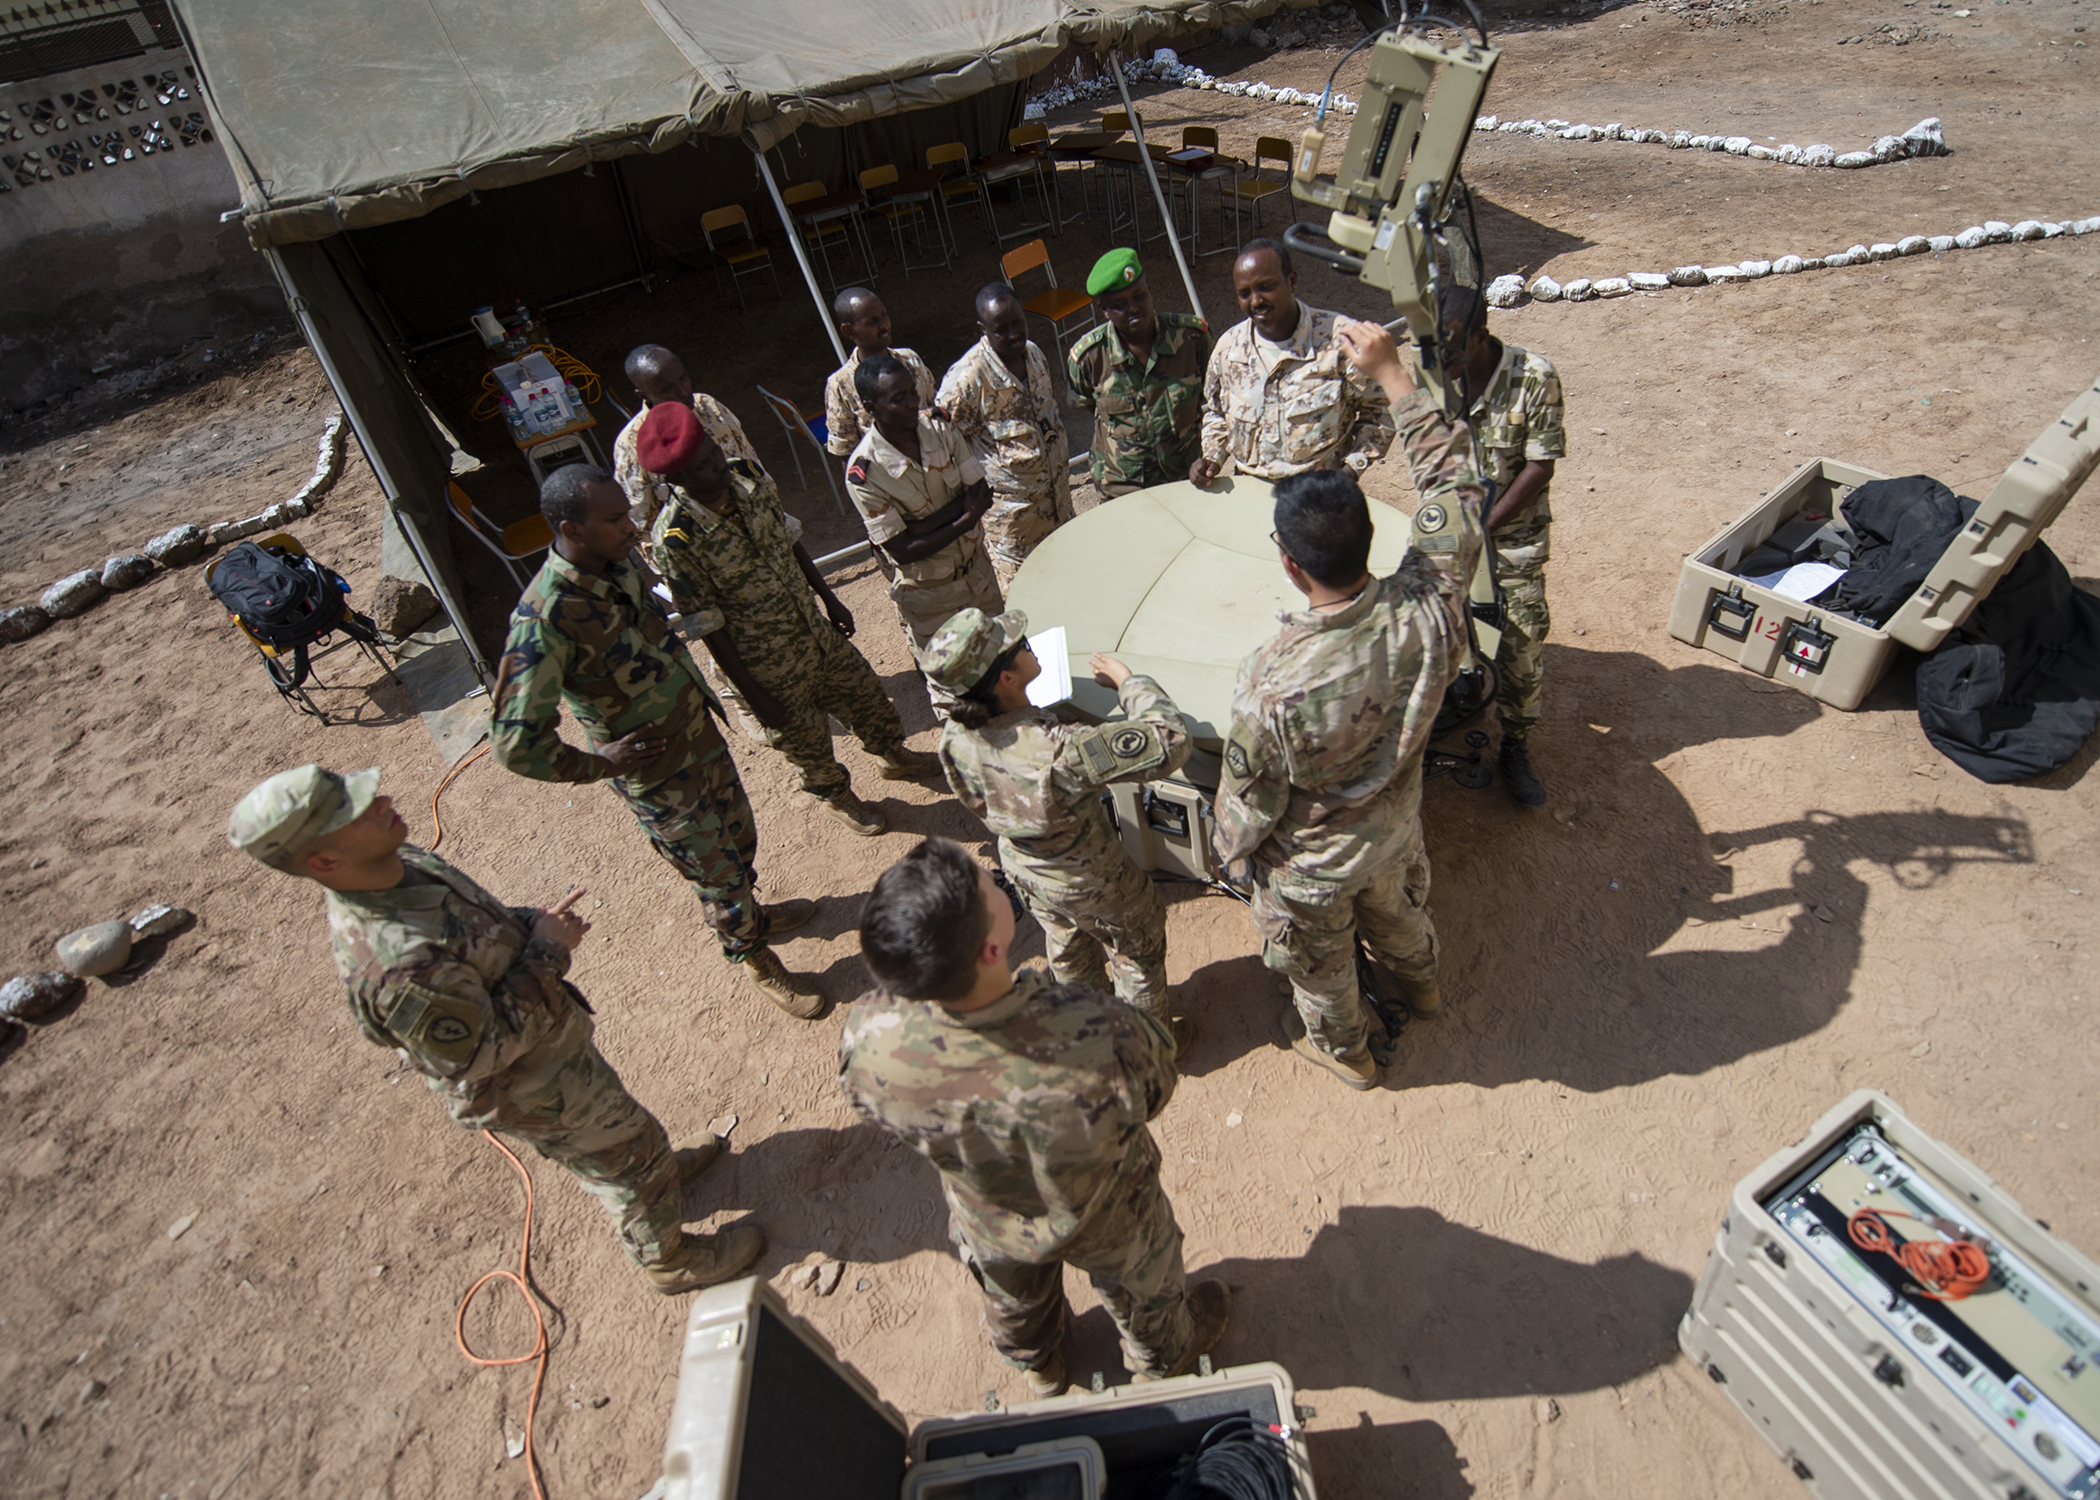 U.S. Army Spc. Christine Cantor, assigned to the Combined Joint Task Force-Horn of Africa communications directorate, explains safety while setting up a satellite unit during an Africa Data Sharing Network (ADSN), version two, information exchange with Djibouti Army (FAD) soldiers at FAD Headquarters, Djibouti, Dec. 26, 2018. The ADSN works as an internal network that the African Union Mission in Somalia troop-contributing countries can use to communicate and share information amongst each other. (U.S. Air Force photo by Tech. Sgt. Shawn Nickel)